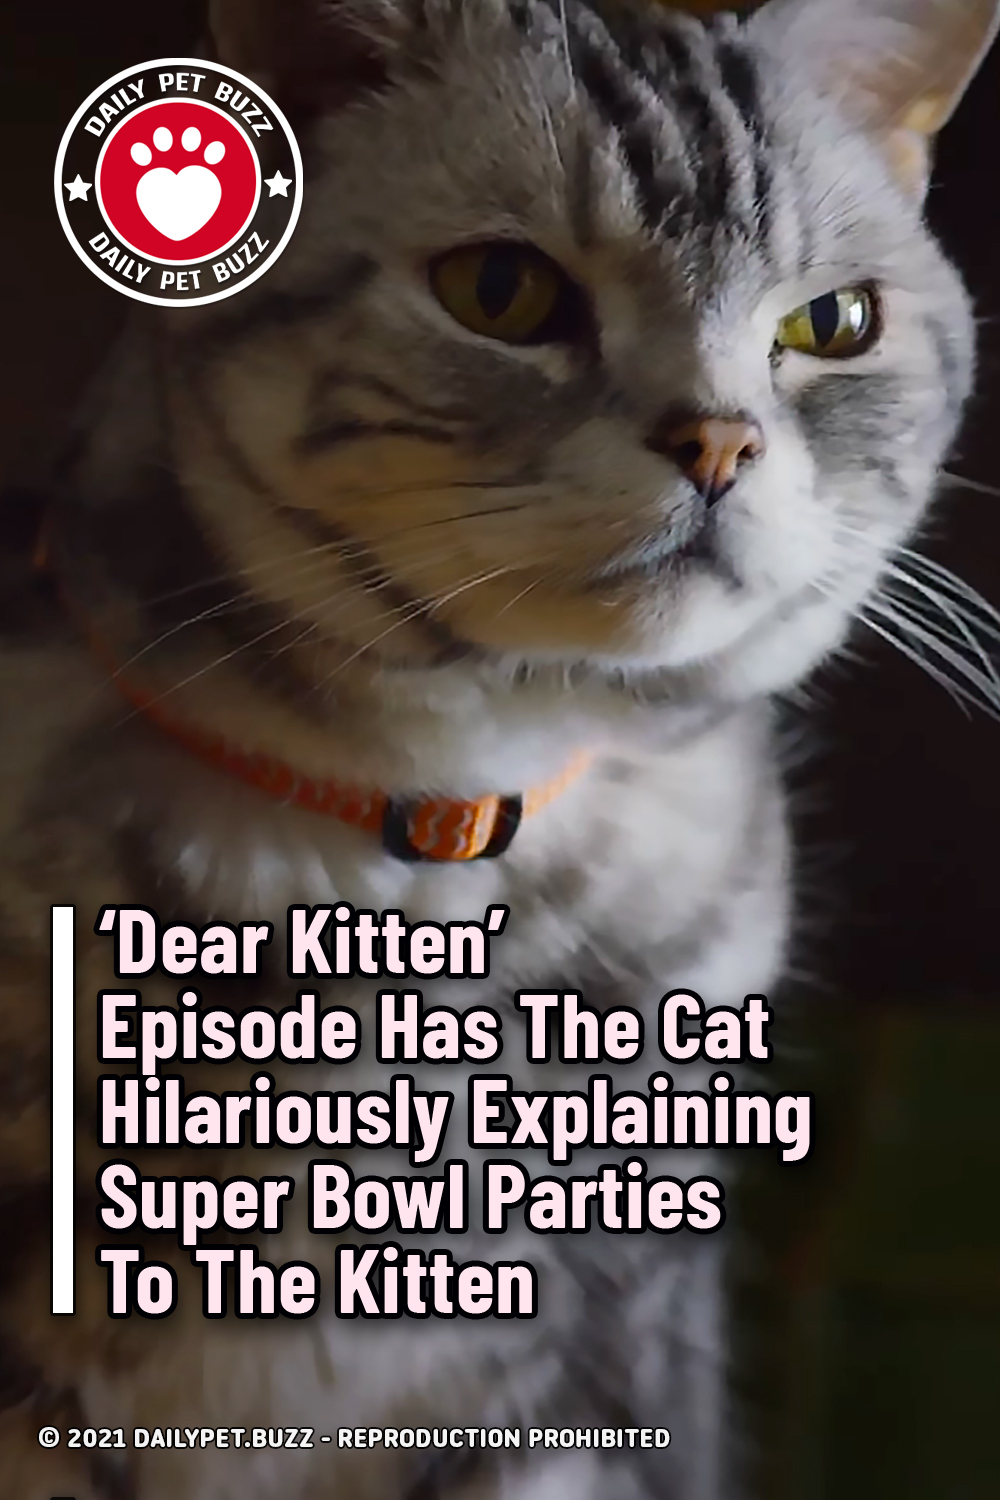 \'Dear Kitten\' Episode Has The Cat Hilariously Explaining Super Bowl Parties To The Kitten